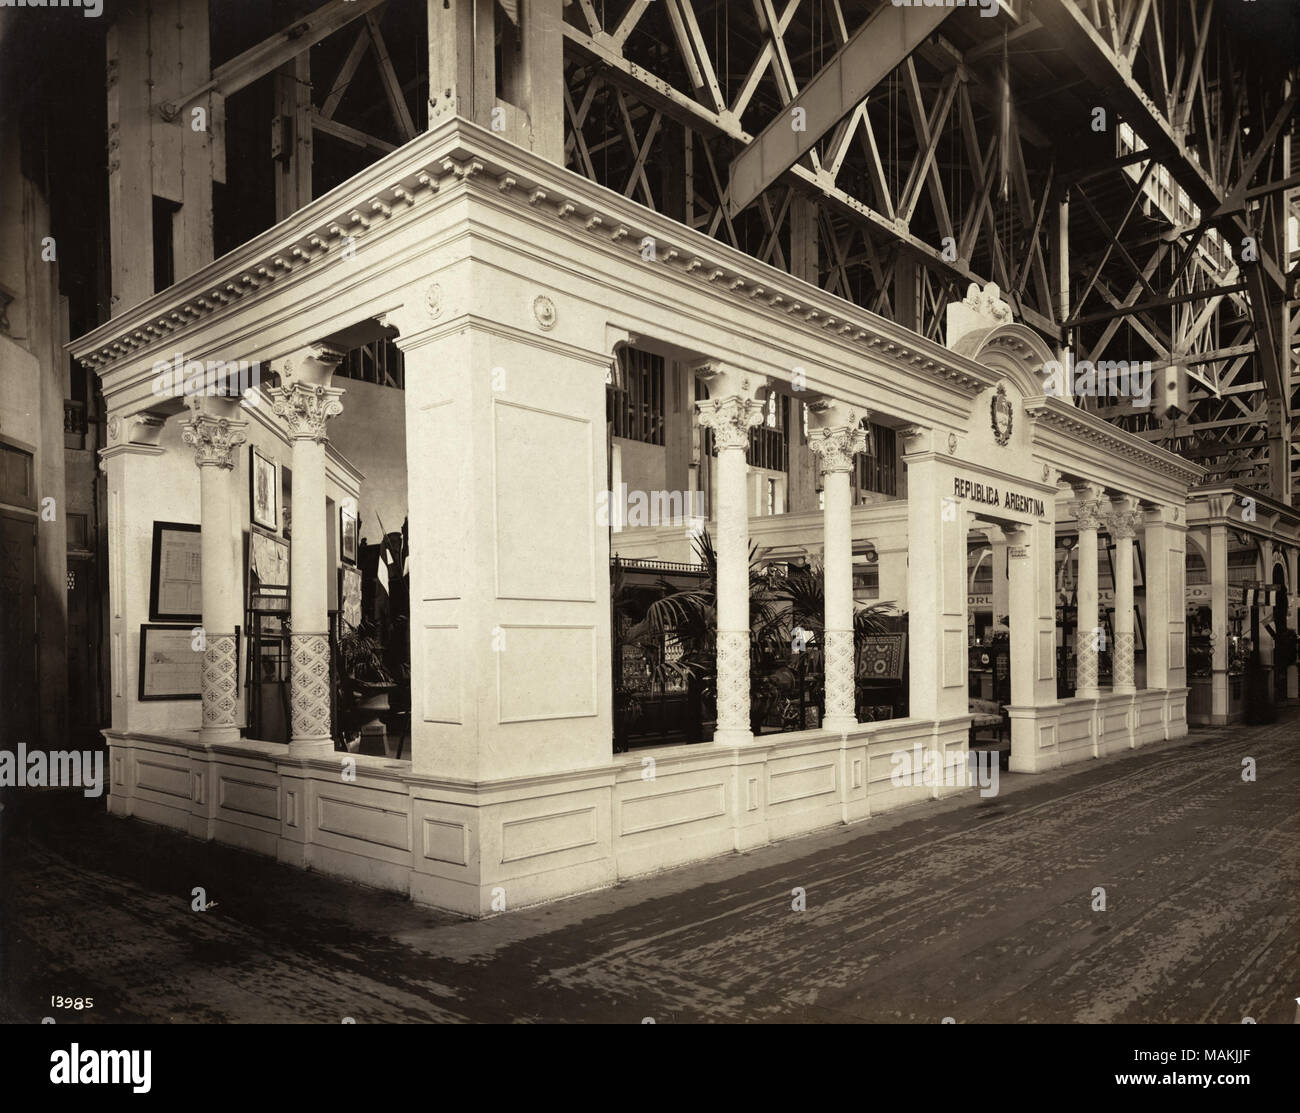 Horizontal, sepia photograph showing a light colored, classically-inspired exhibit structure with 'Republica Argentina' written above the entry way. The scaffolding for the larger building the display is in can be seen above. Title: Exterior view of Argentina's exhibit in the Palace of Manufactures at the 1904 World's Fair.  . 1904. Official Photographic Company - Stock Image